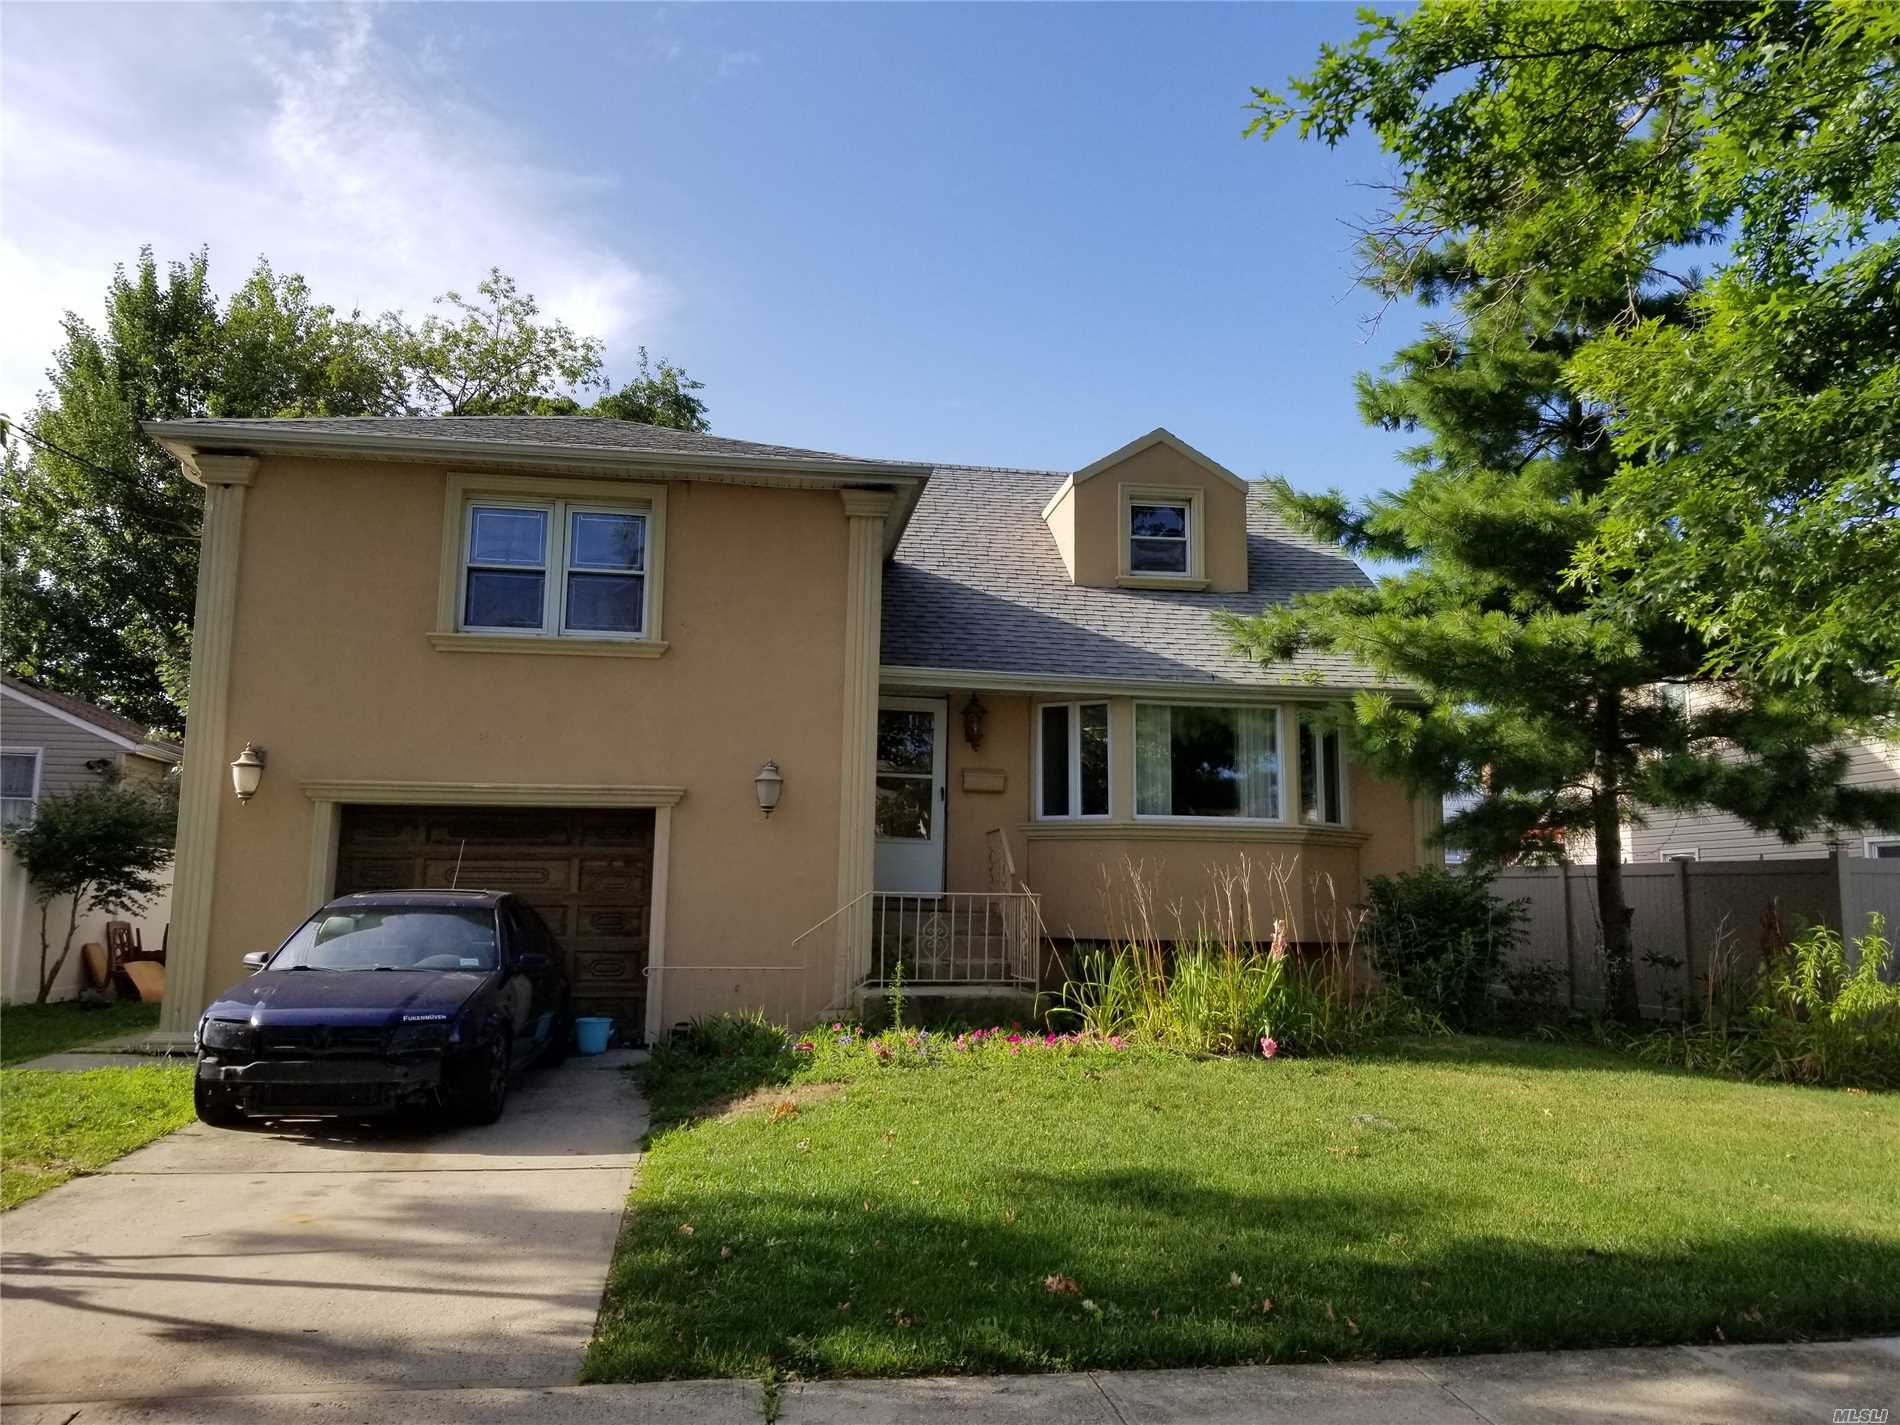 Home Is Located In A Nice Residential Area, And Has Great Potential. Home Was Never Remediated After Sandy. Roof Is Leaking, Visible Black Mold. Home Needs Renovating And Updating, Bring Your Idea's And Restore This Home To Its Original Beauty!